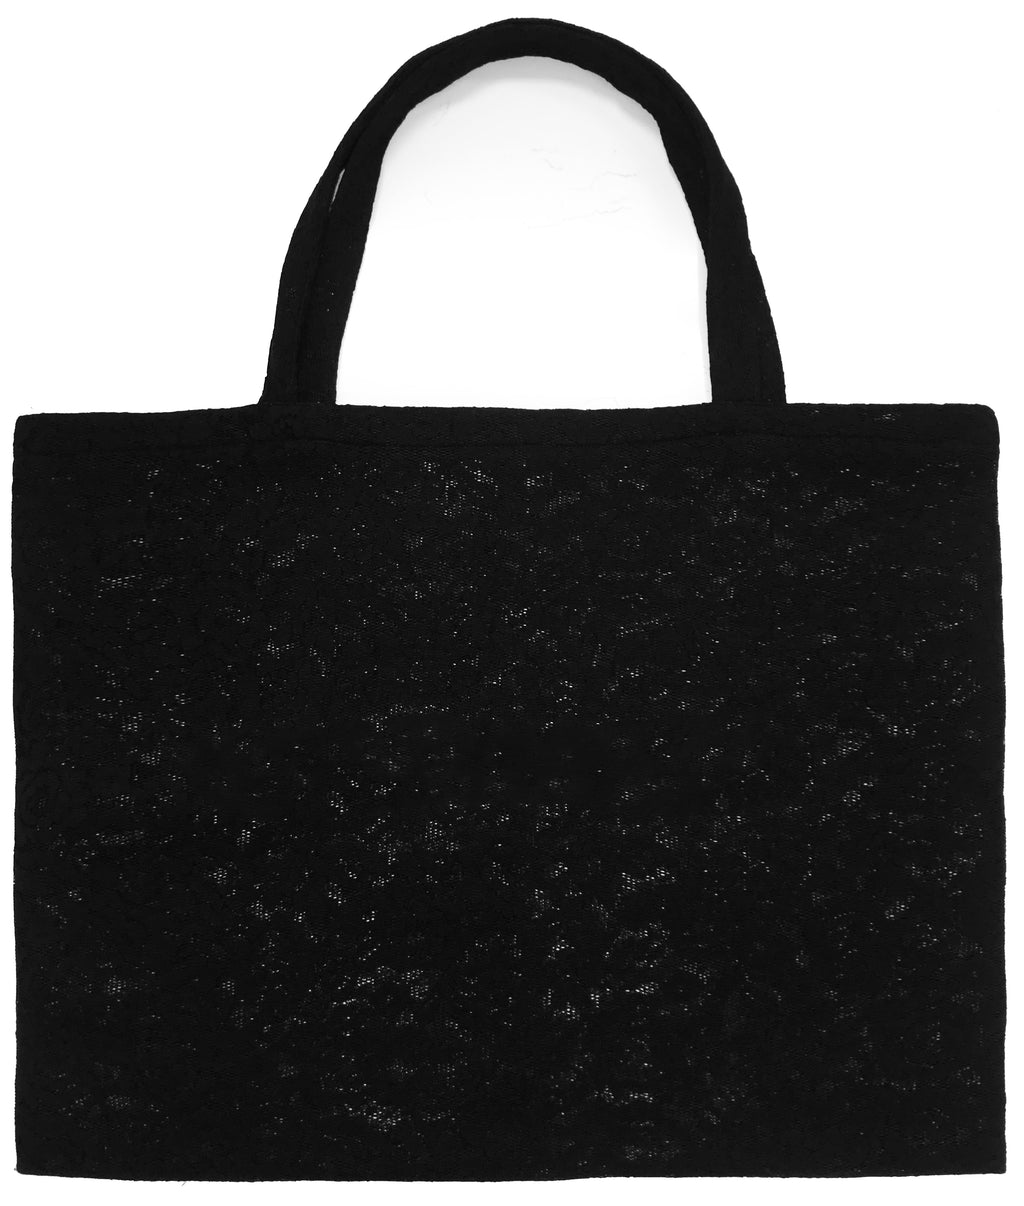 SHOPPER BAG in LACE NEOPRENE - MENAGERIÉ Intimates